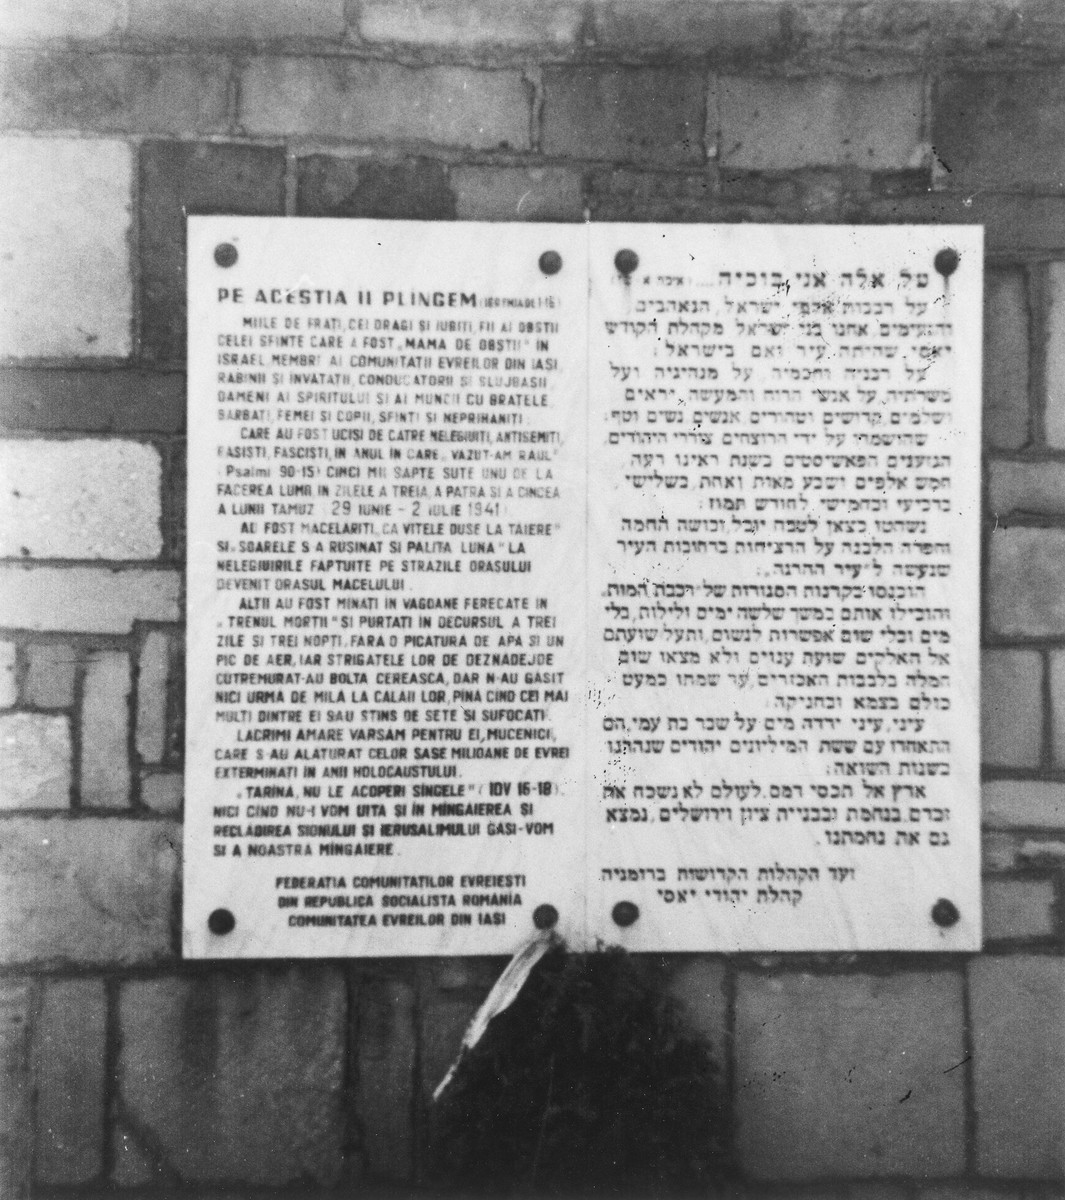 Memorial plaque in Hebrew and Romanian for the Jews of Iasi who were killed during the pogrom and evacuation by train from the city in June and July, 1941.